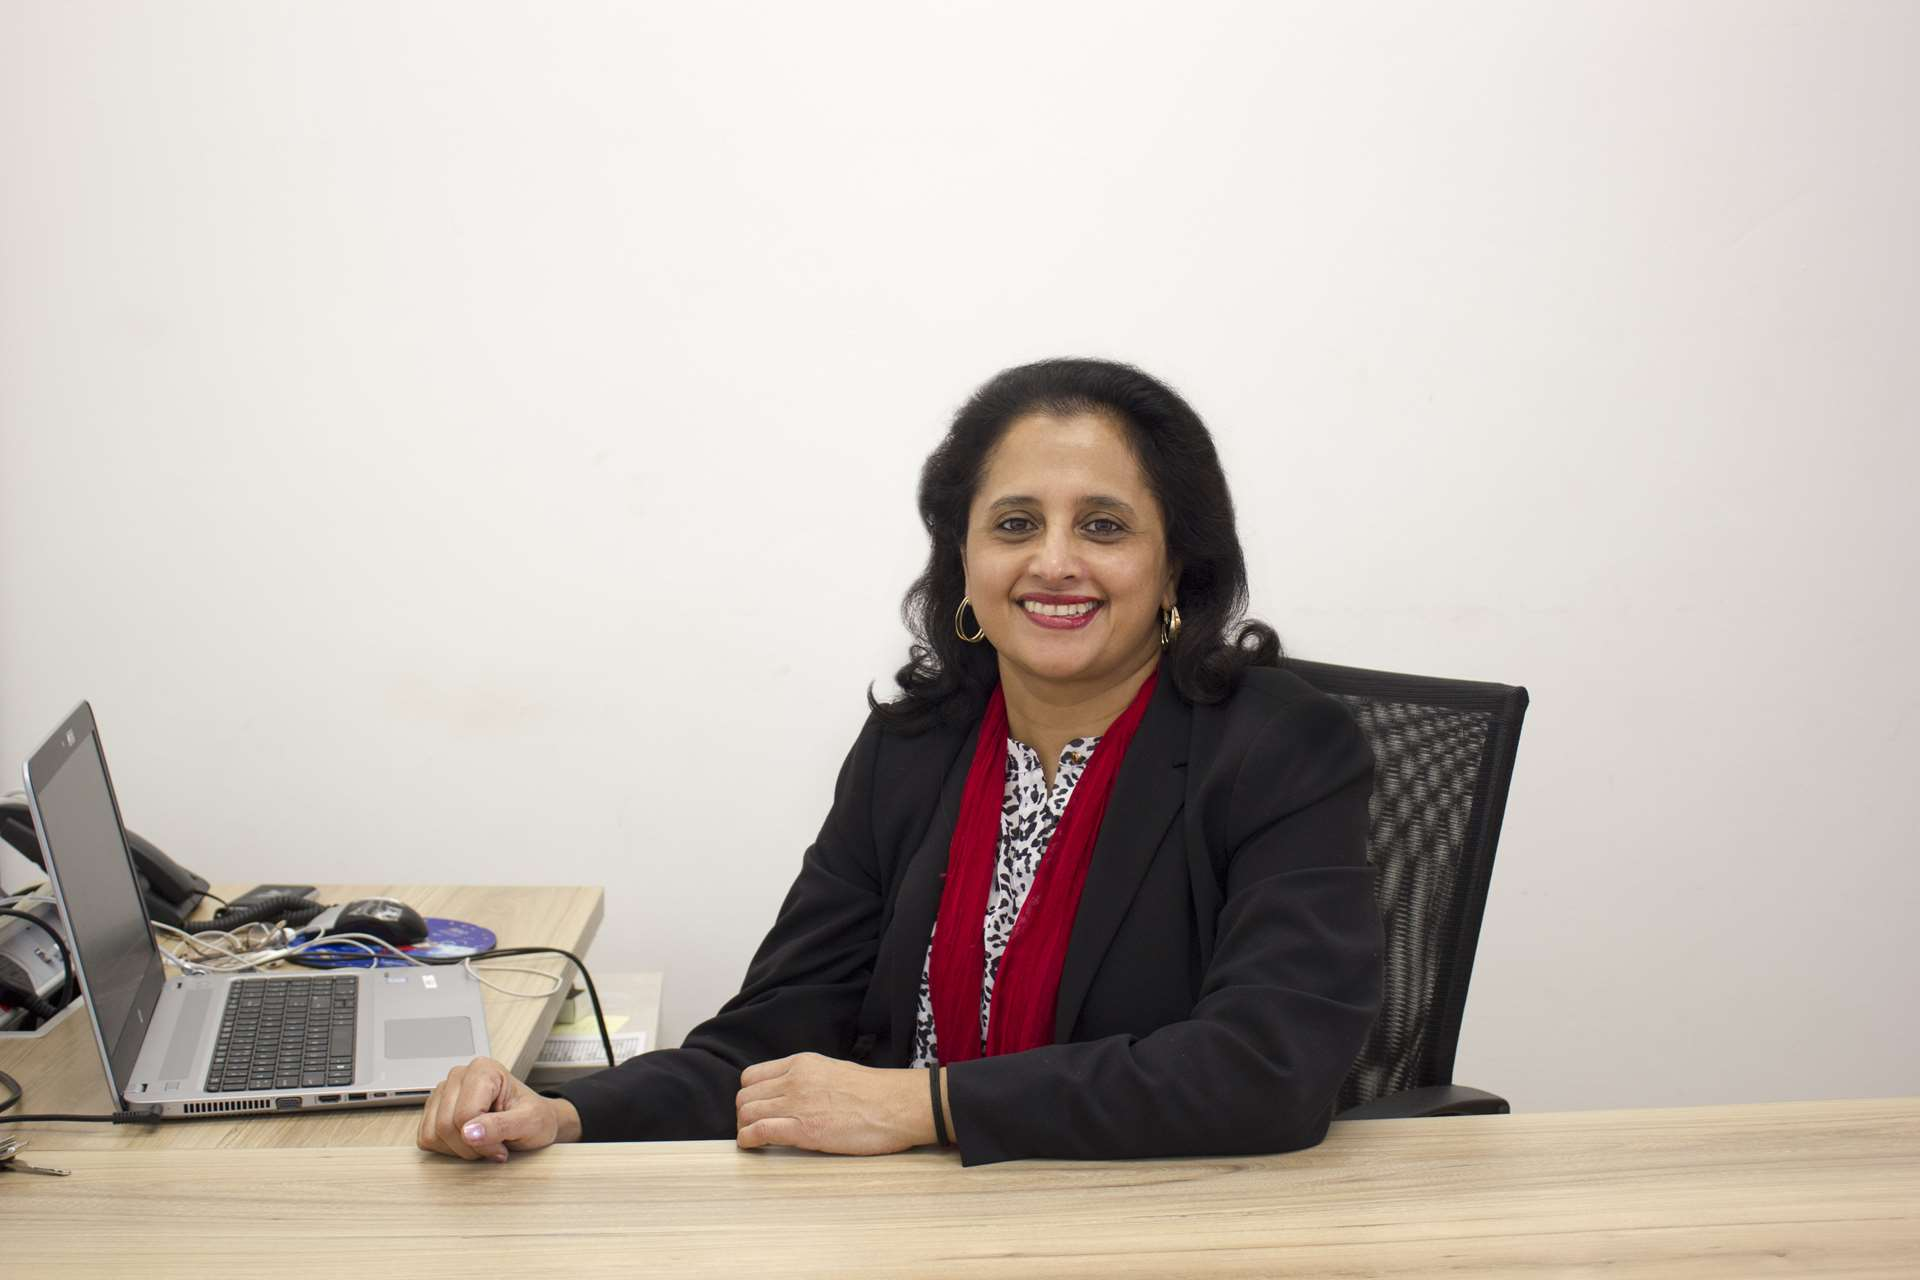 Marsha Thurairatnam, Associate Director, Business Advisory Services